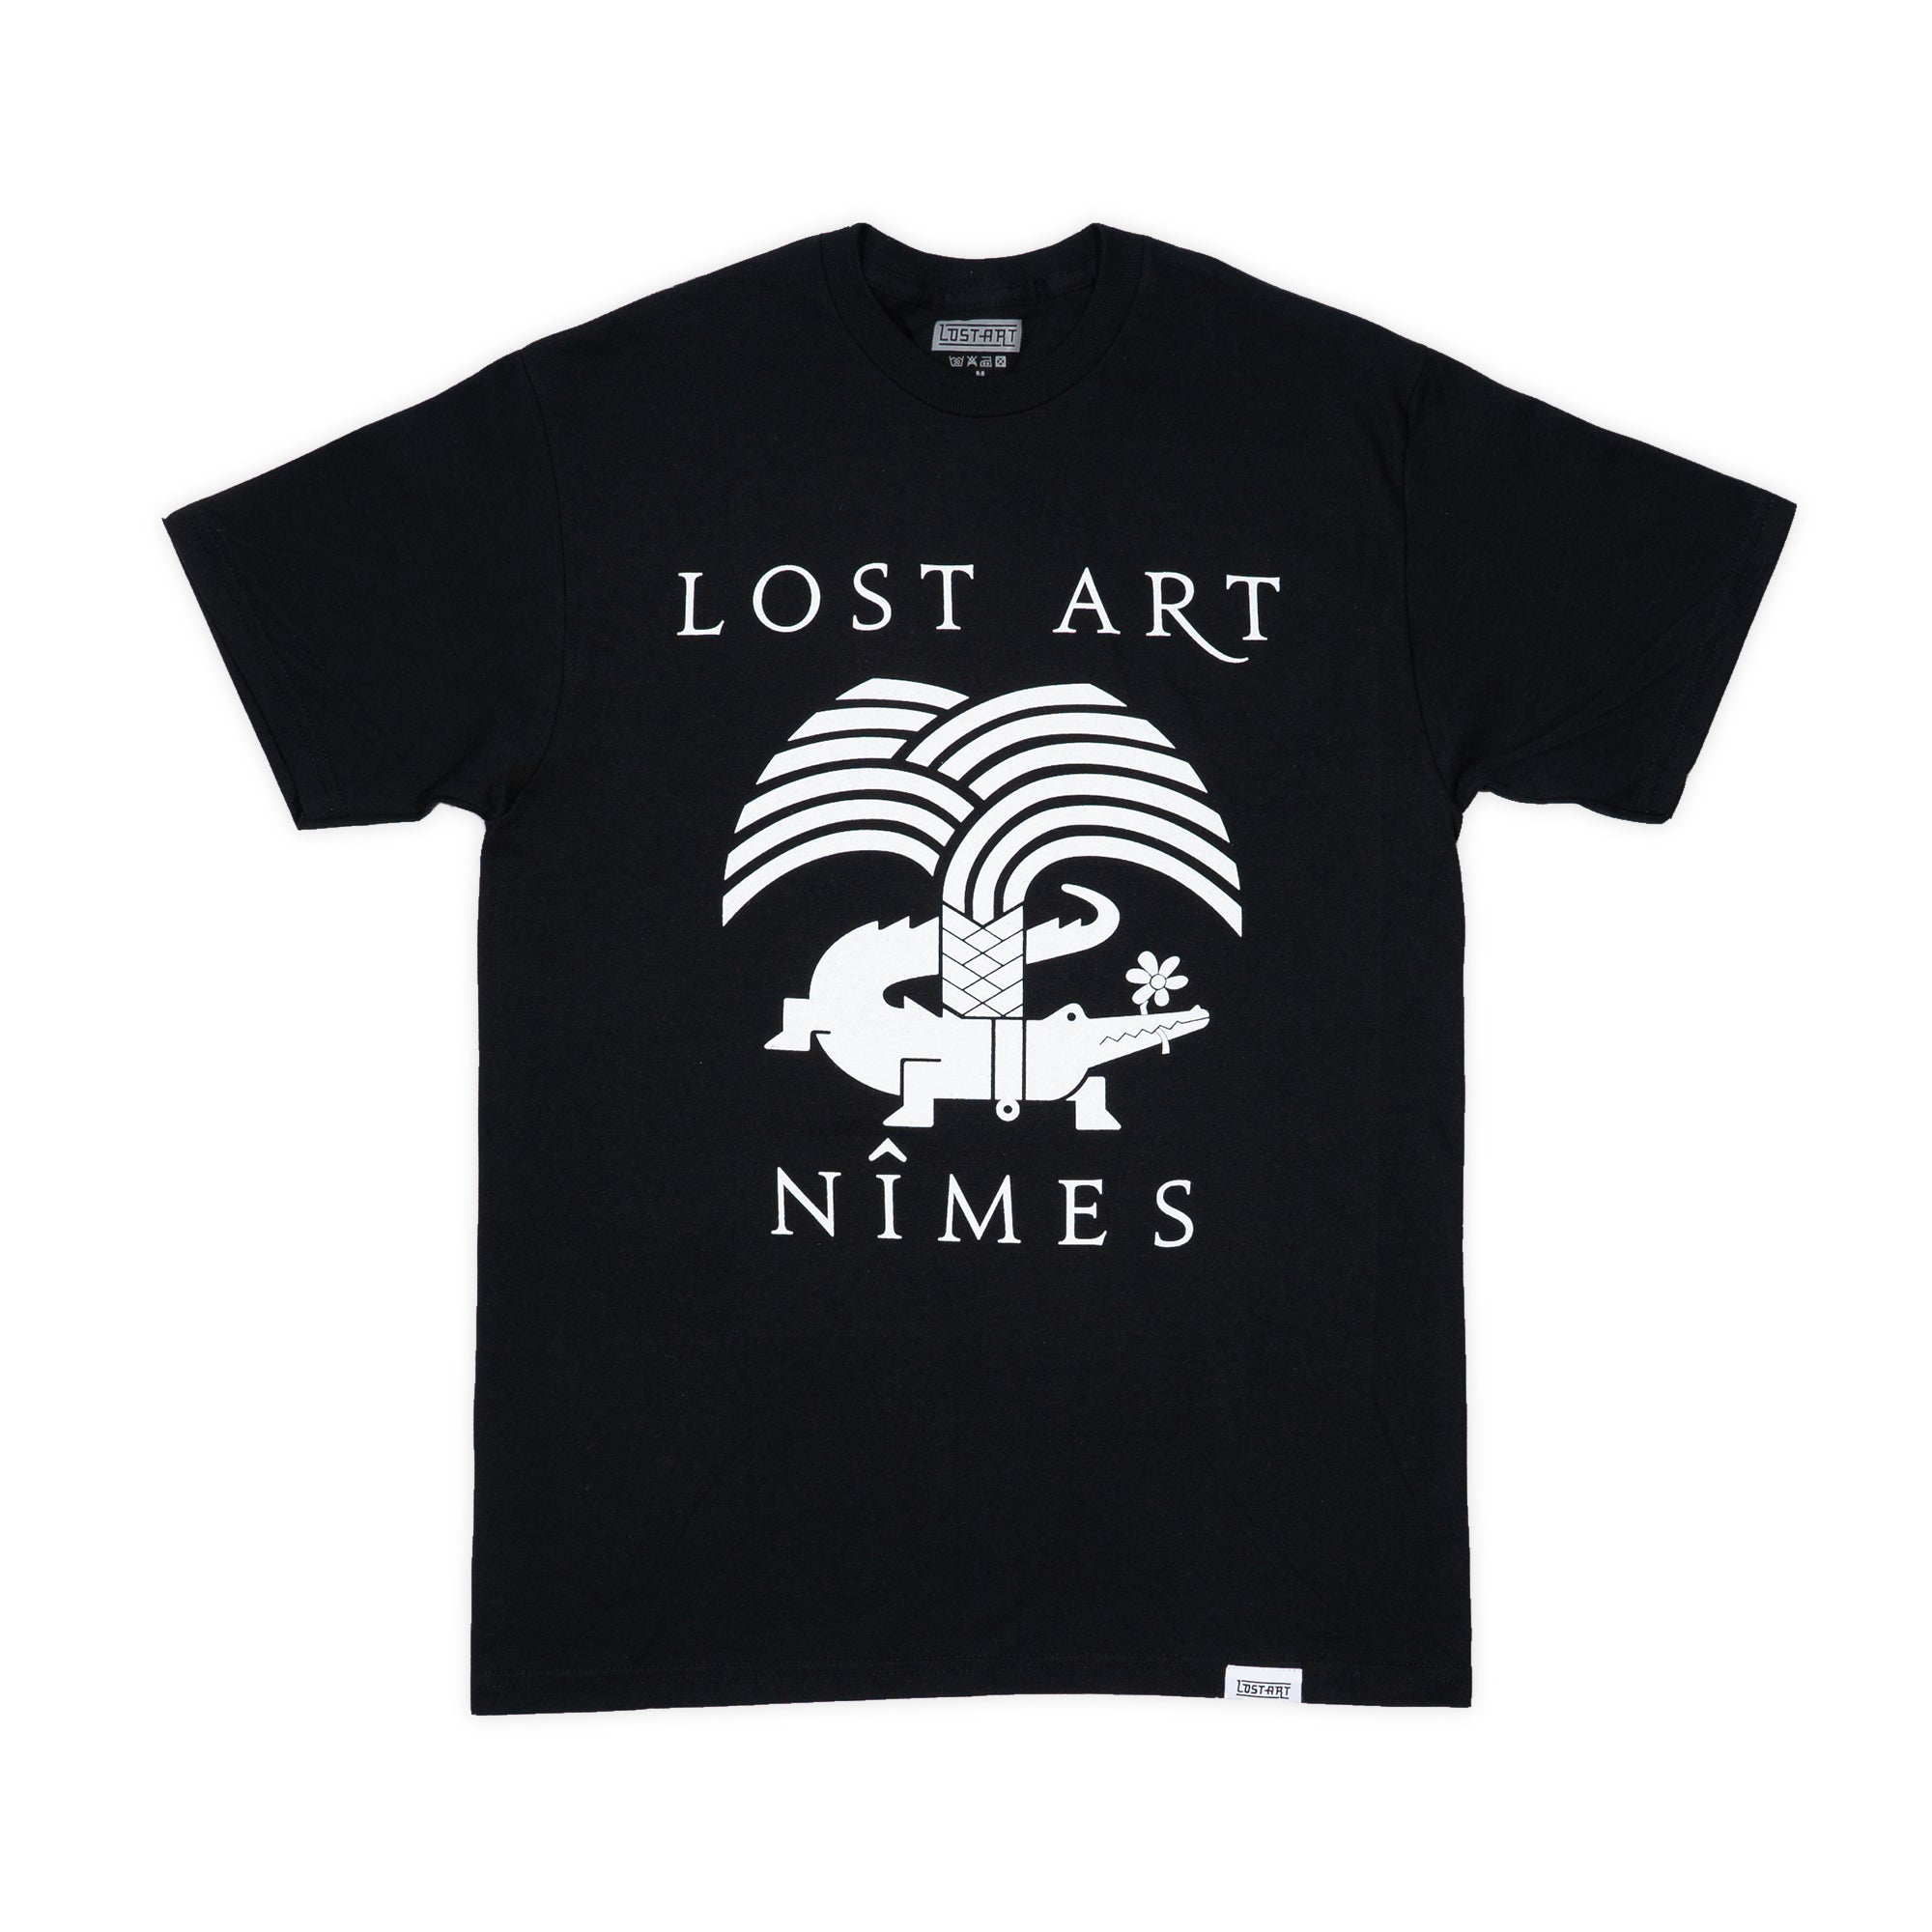 Lost Art -</br>Nimes Tee S/S </br> Black